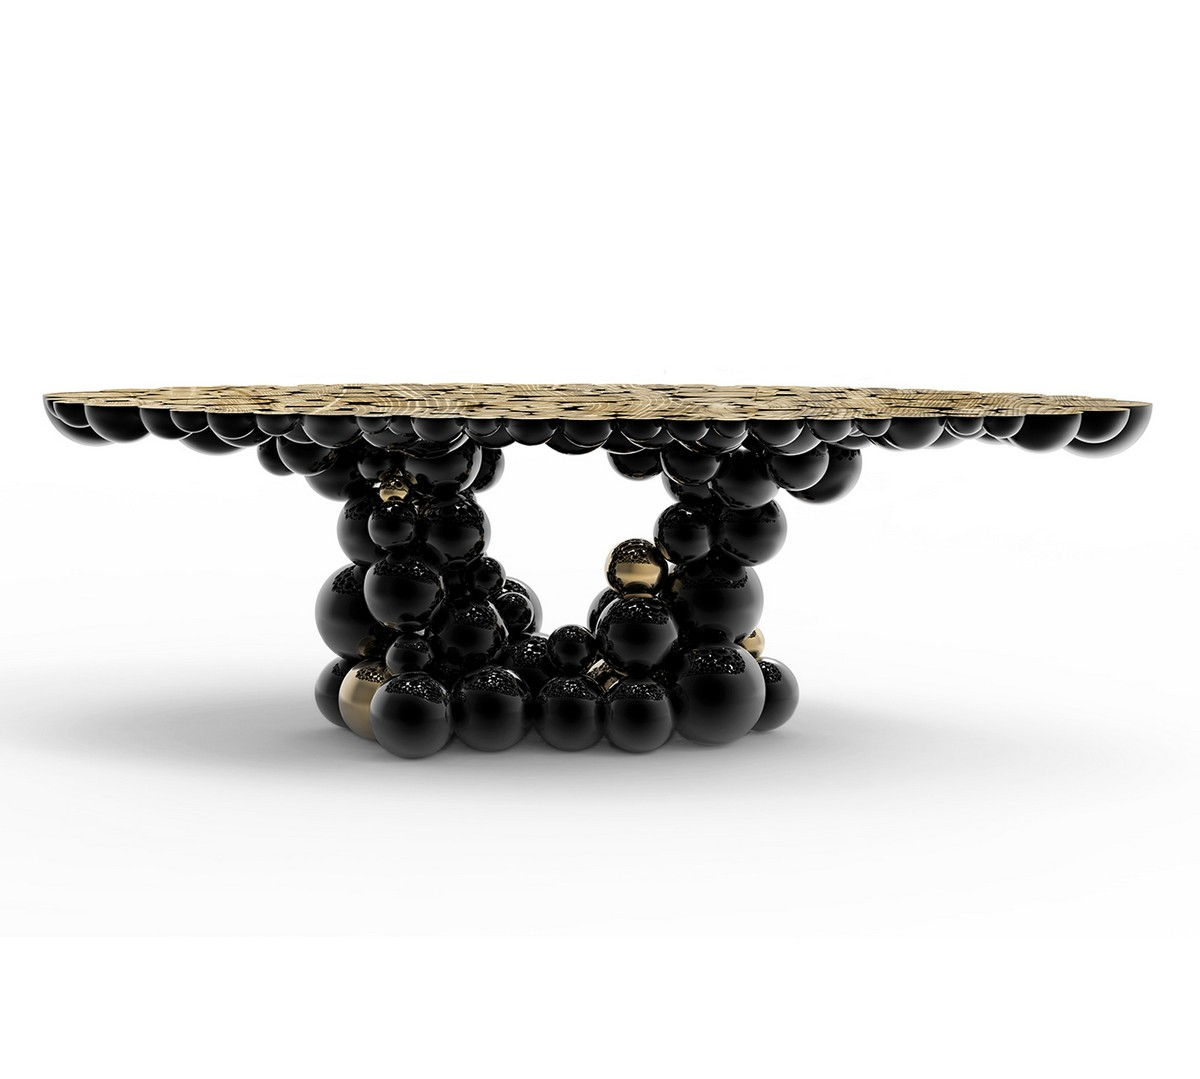 Modern Dining Tables Inspired by History modern dining tables Modern Dining Tables Inspired by History newton